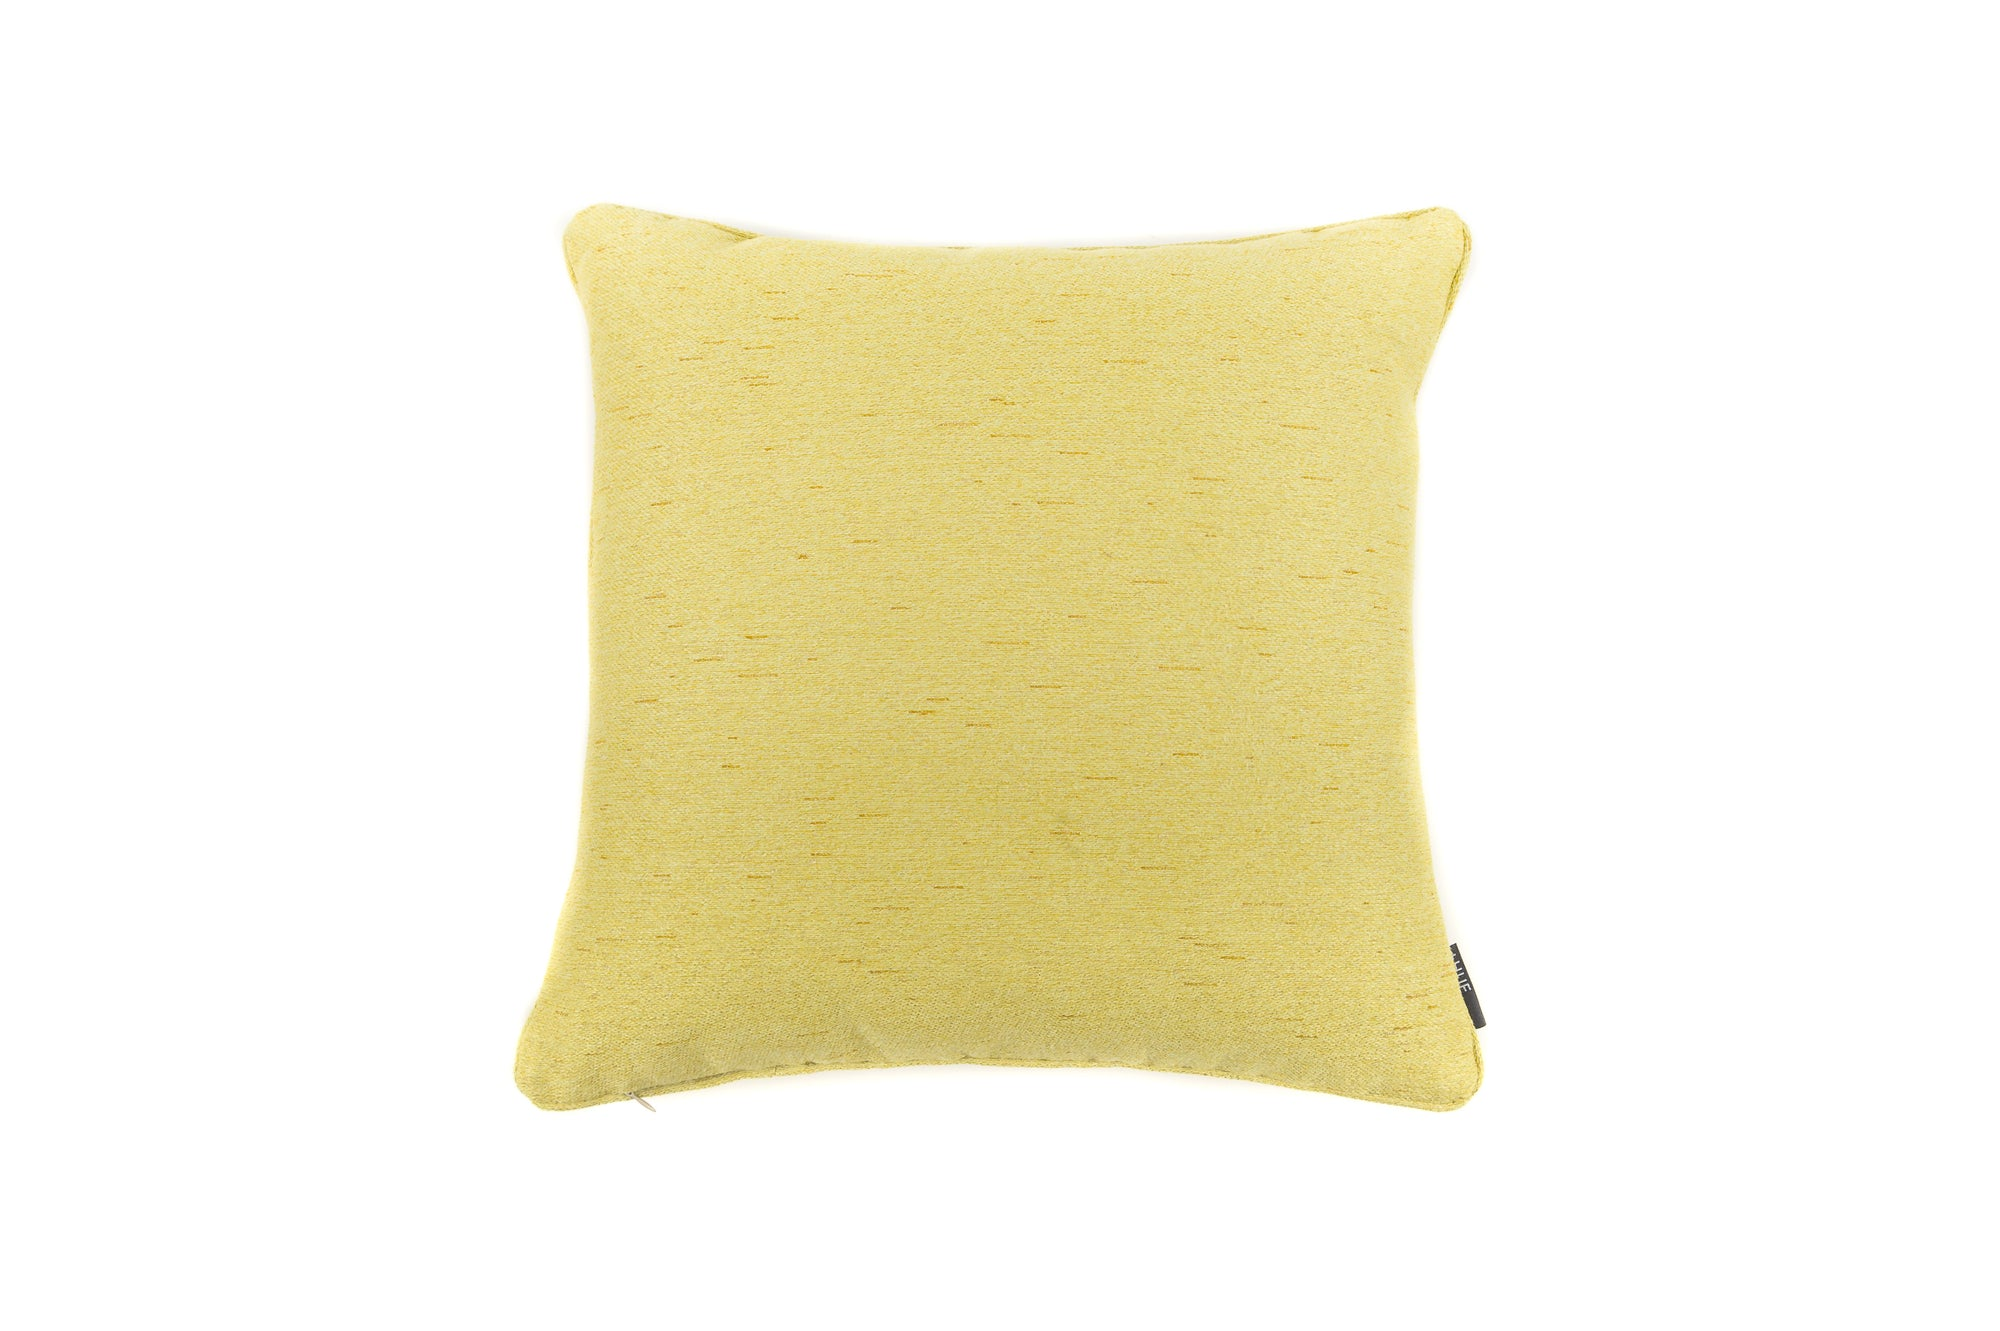 Surprise Plain Lemon Cushion - Fervor + Hue